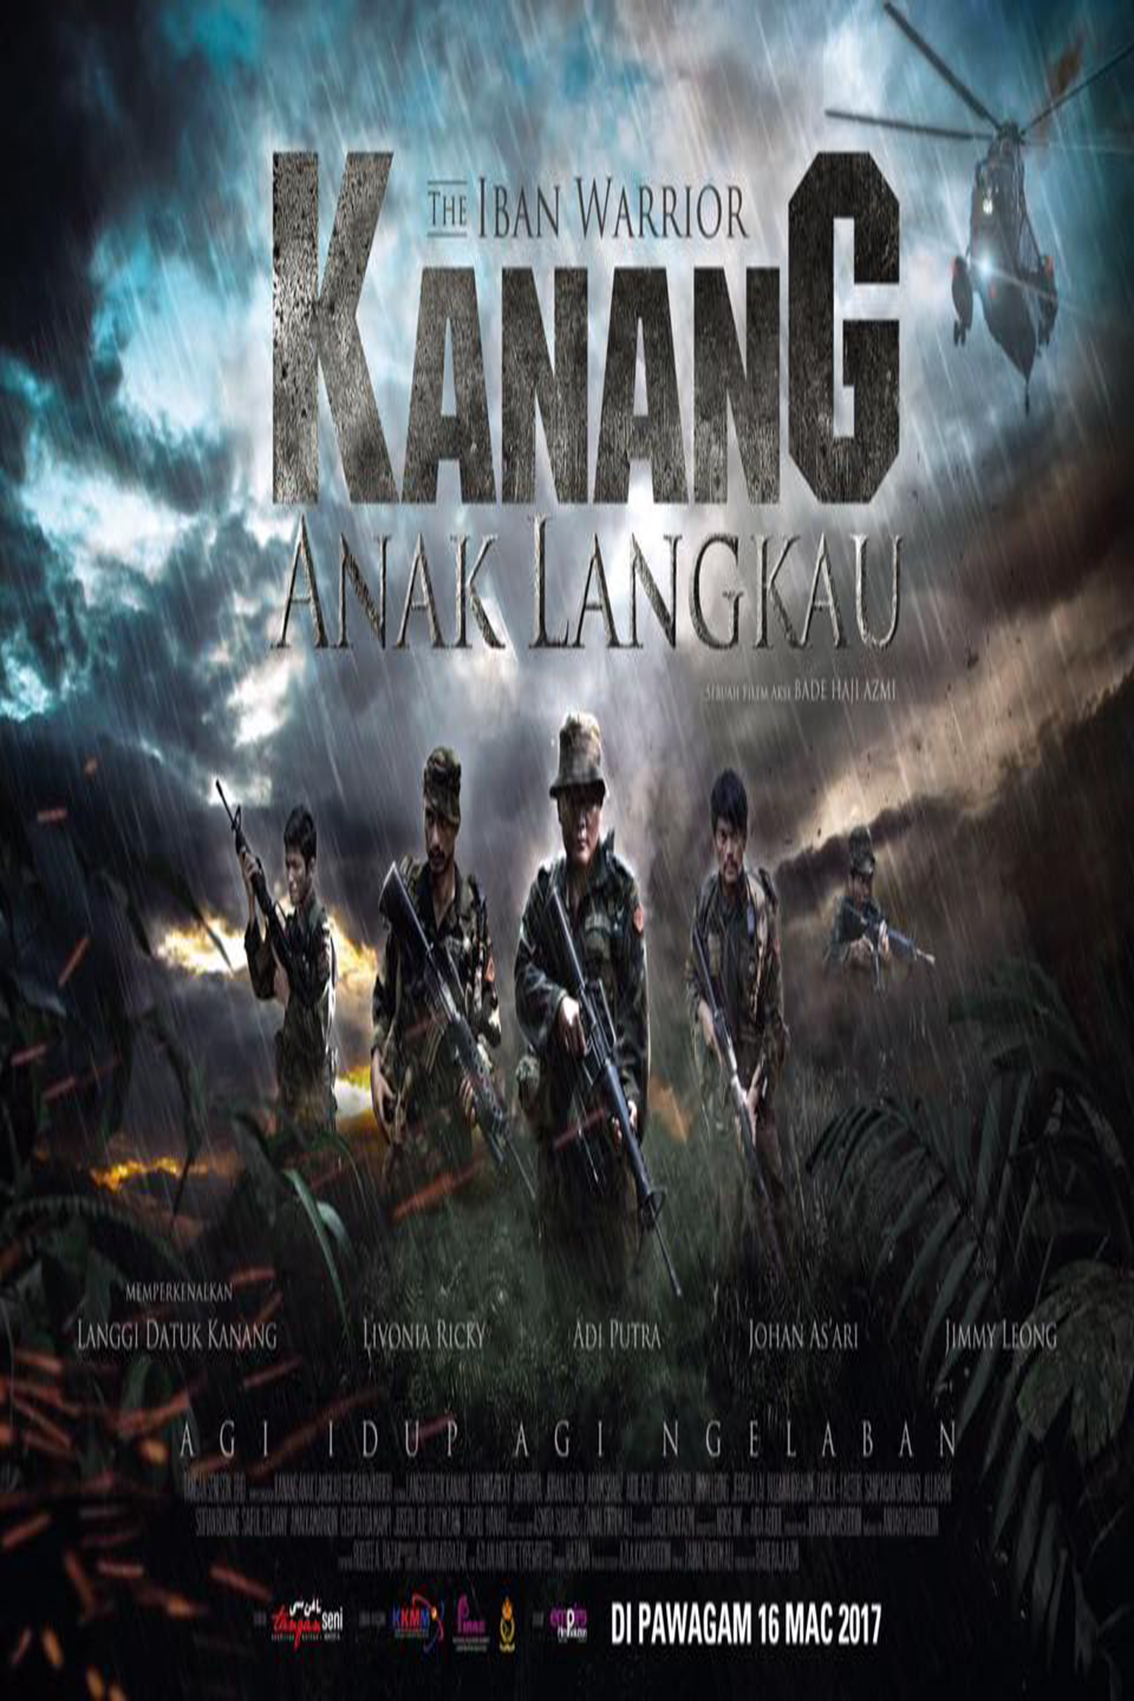 Kanang anak Langkau The Iban Warrior [2017 Malaysia Movie] Action, History, True Story